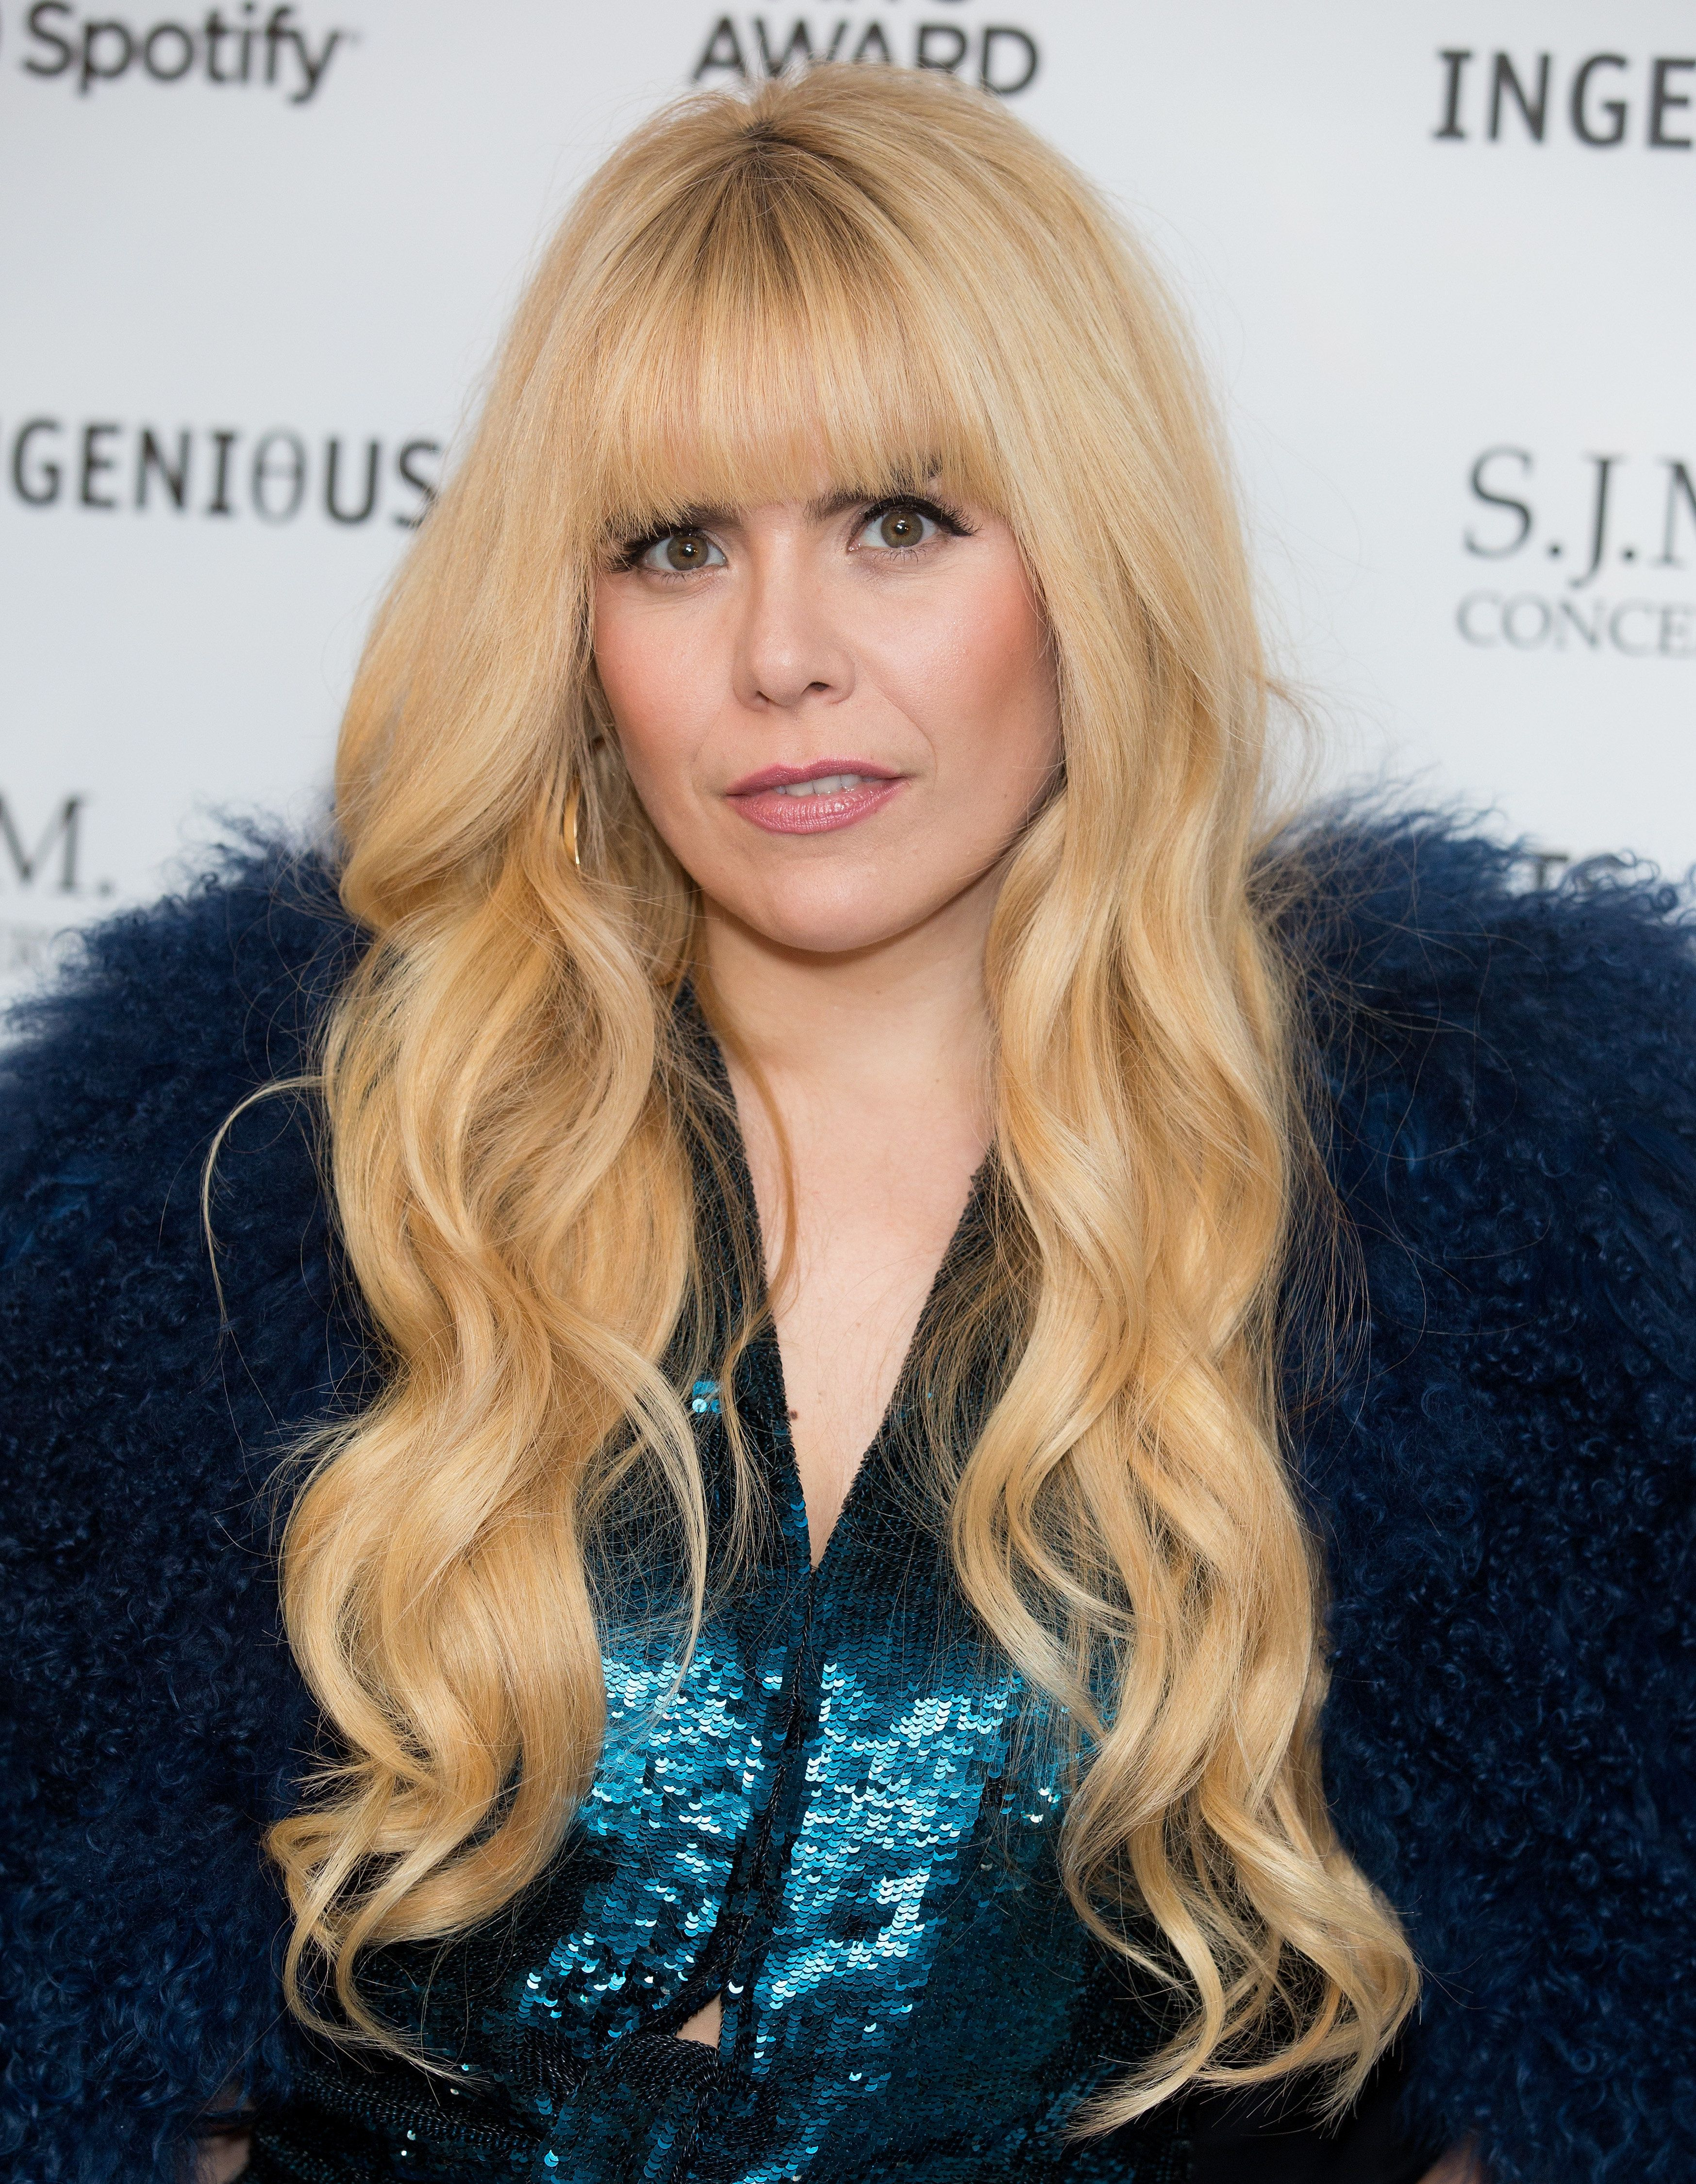 Former 'The Voice' Coach Paloma Faith Says Show Doesn't Do Enough To 'Support